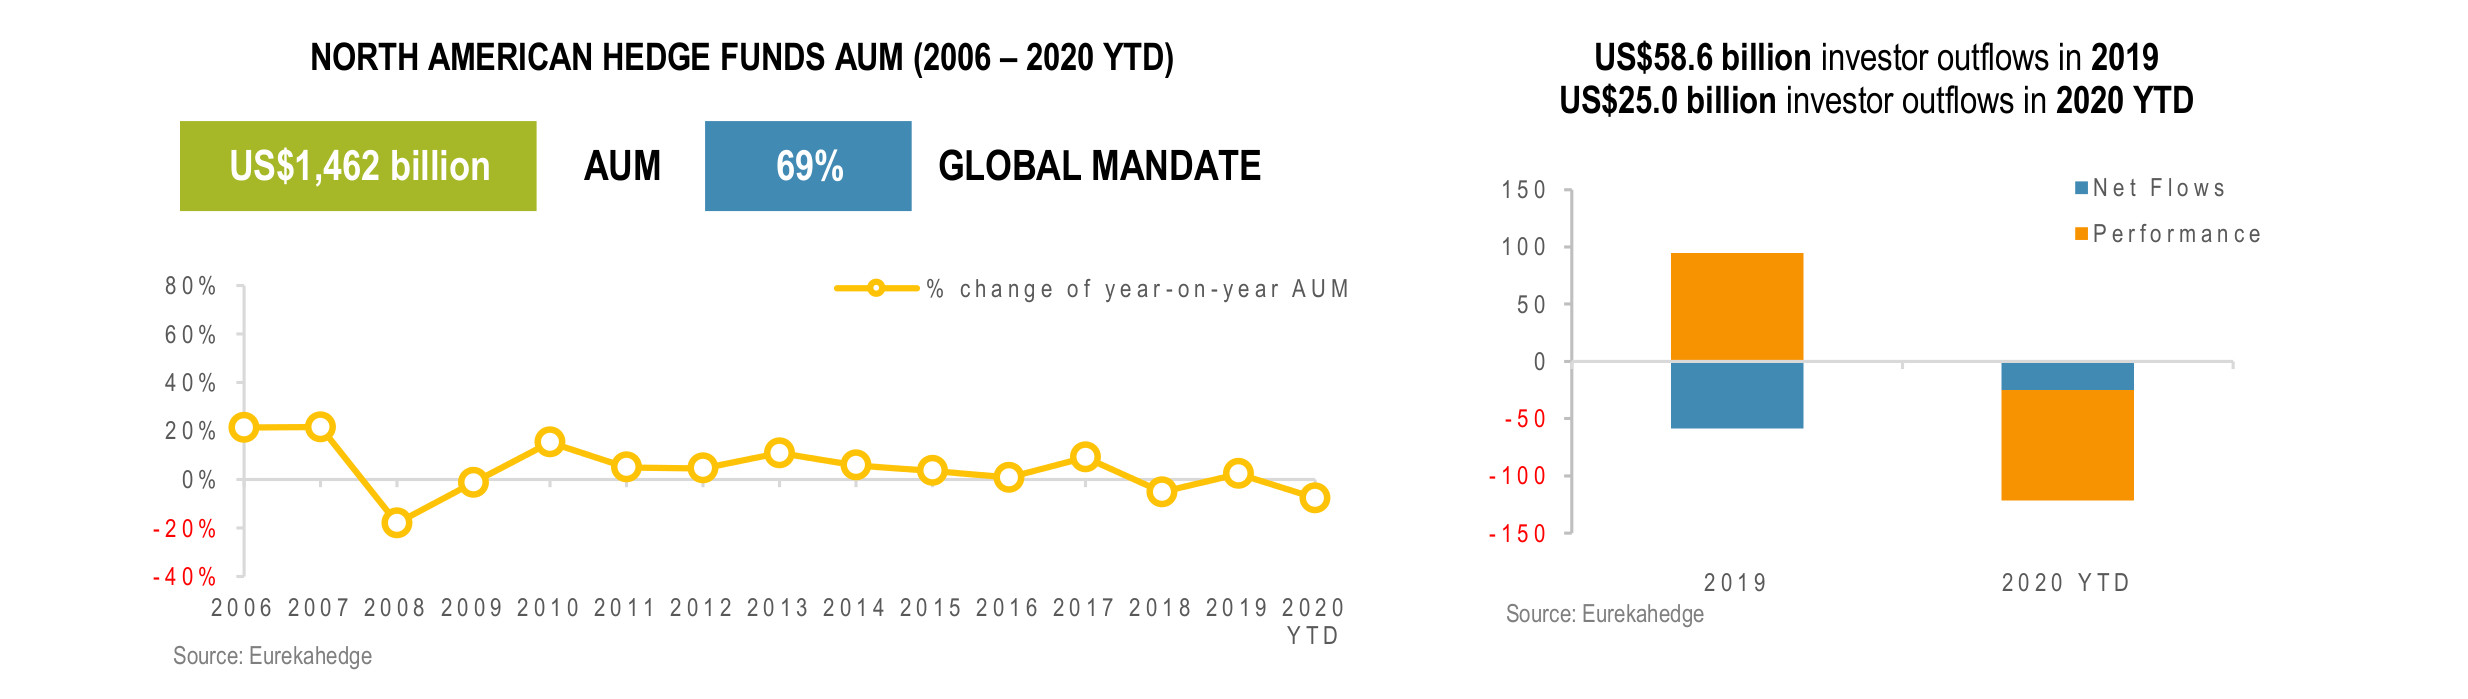 North American Hedge Funds Infographic May 2020 - AUM